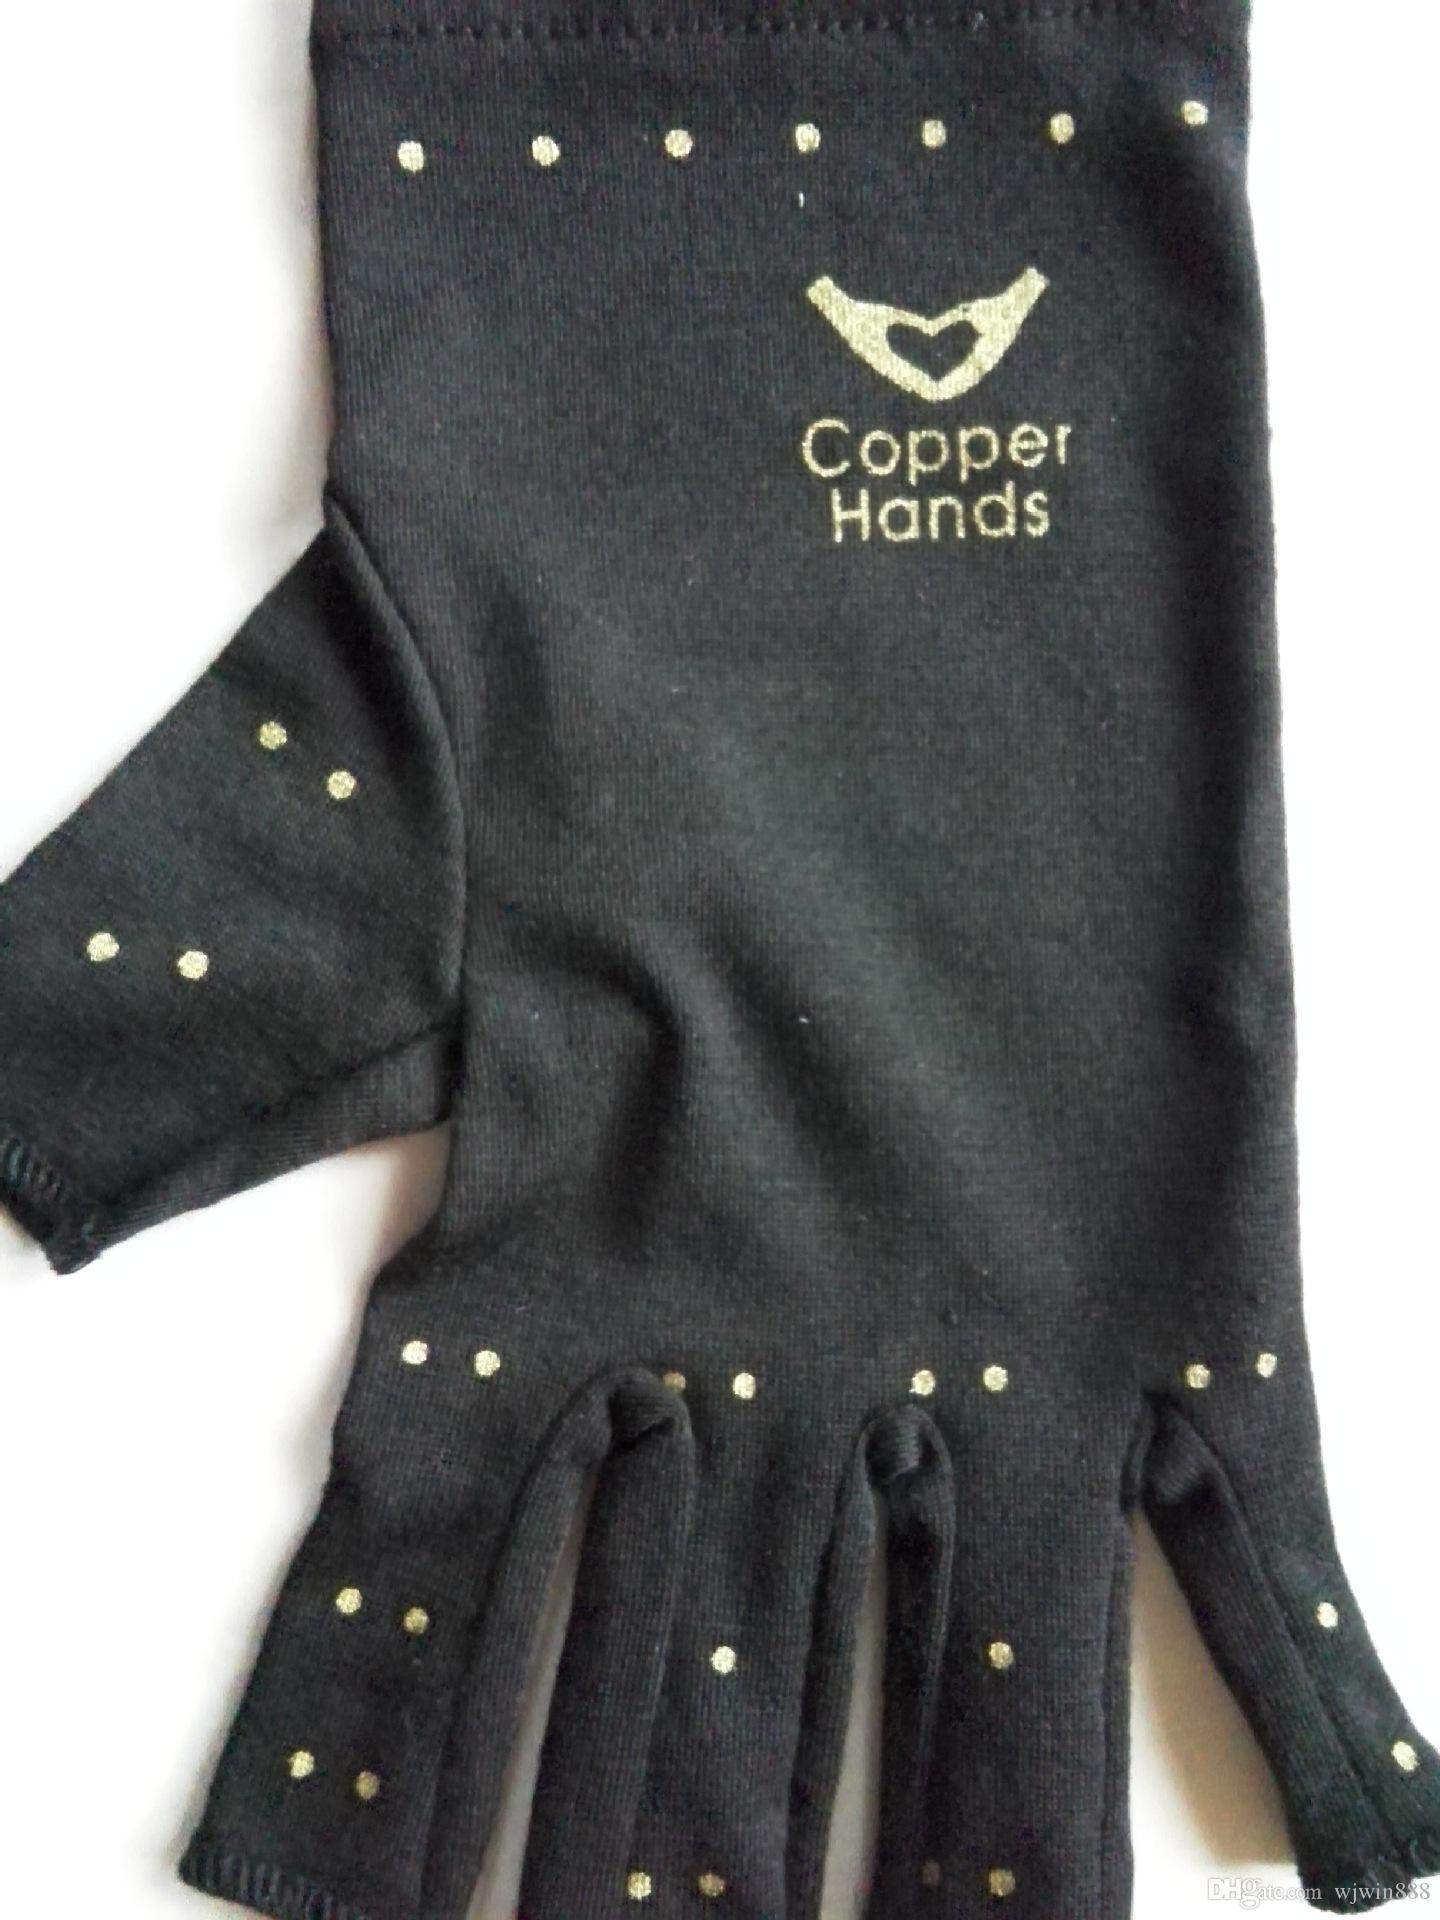 Driving gloves carpal tunnel - 2017 Custom Design Print Logo Compression Gloves Infused With Copper For Arthritis Carpal Tunnel And Muscle Or Joint Pain For Men And Women From Wjwin888